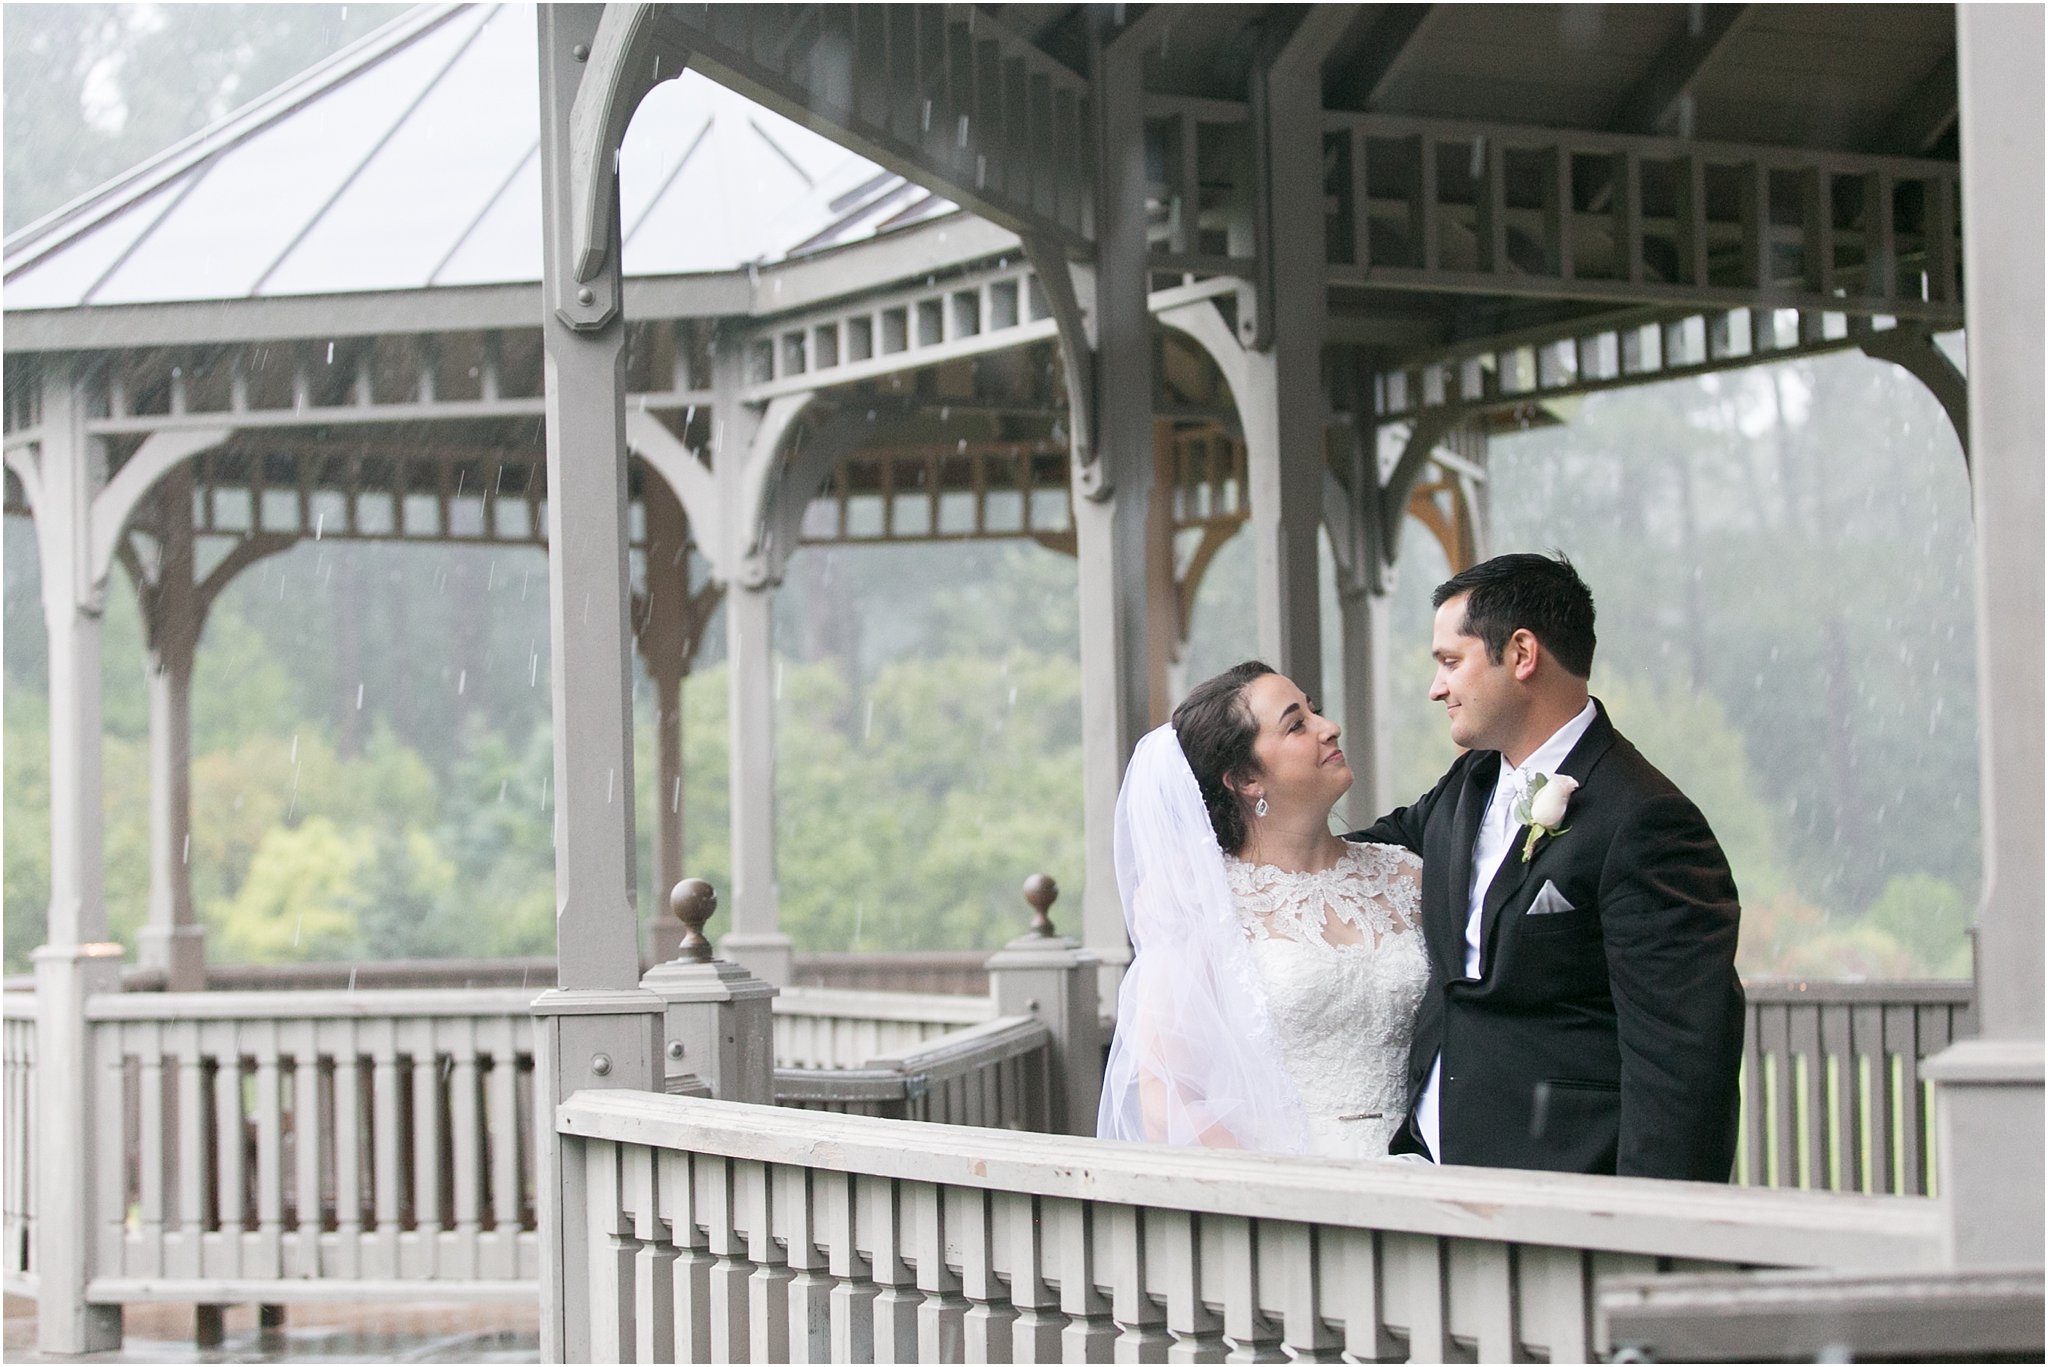 jessica_ryan_photography_virginia_wedding_photographer_wedding_hurricane_norfolk_botanical_gardens_hurricane_matthew_wedding_3567